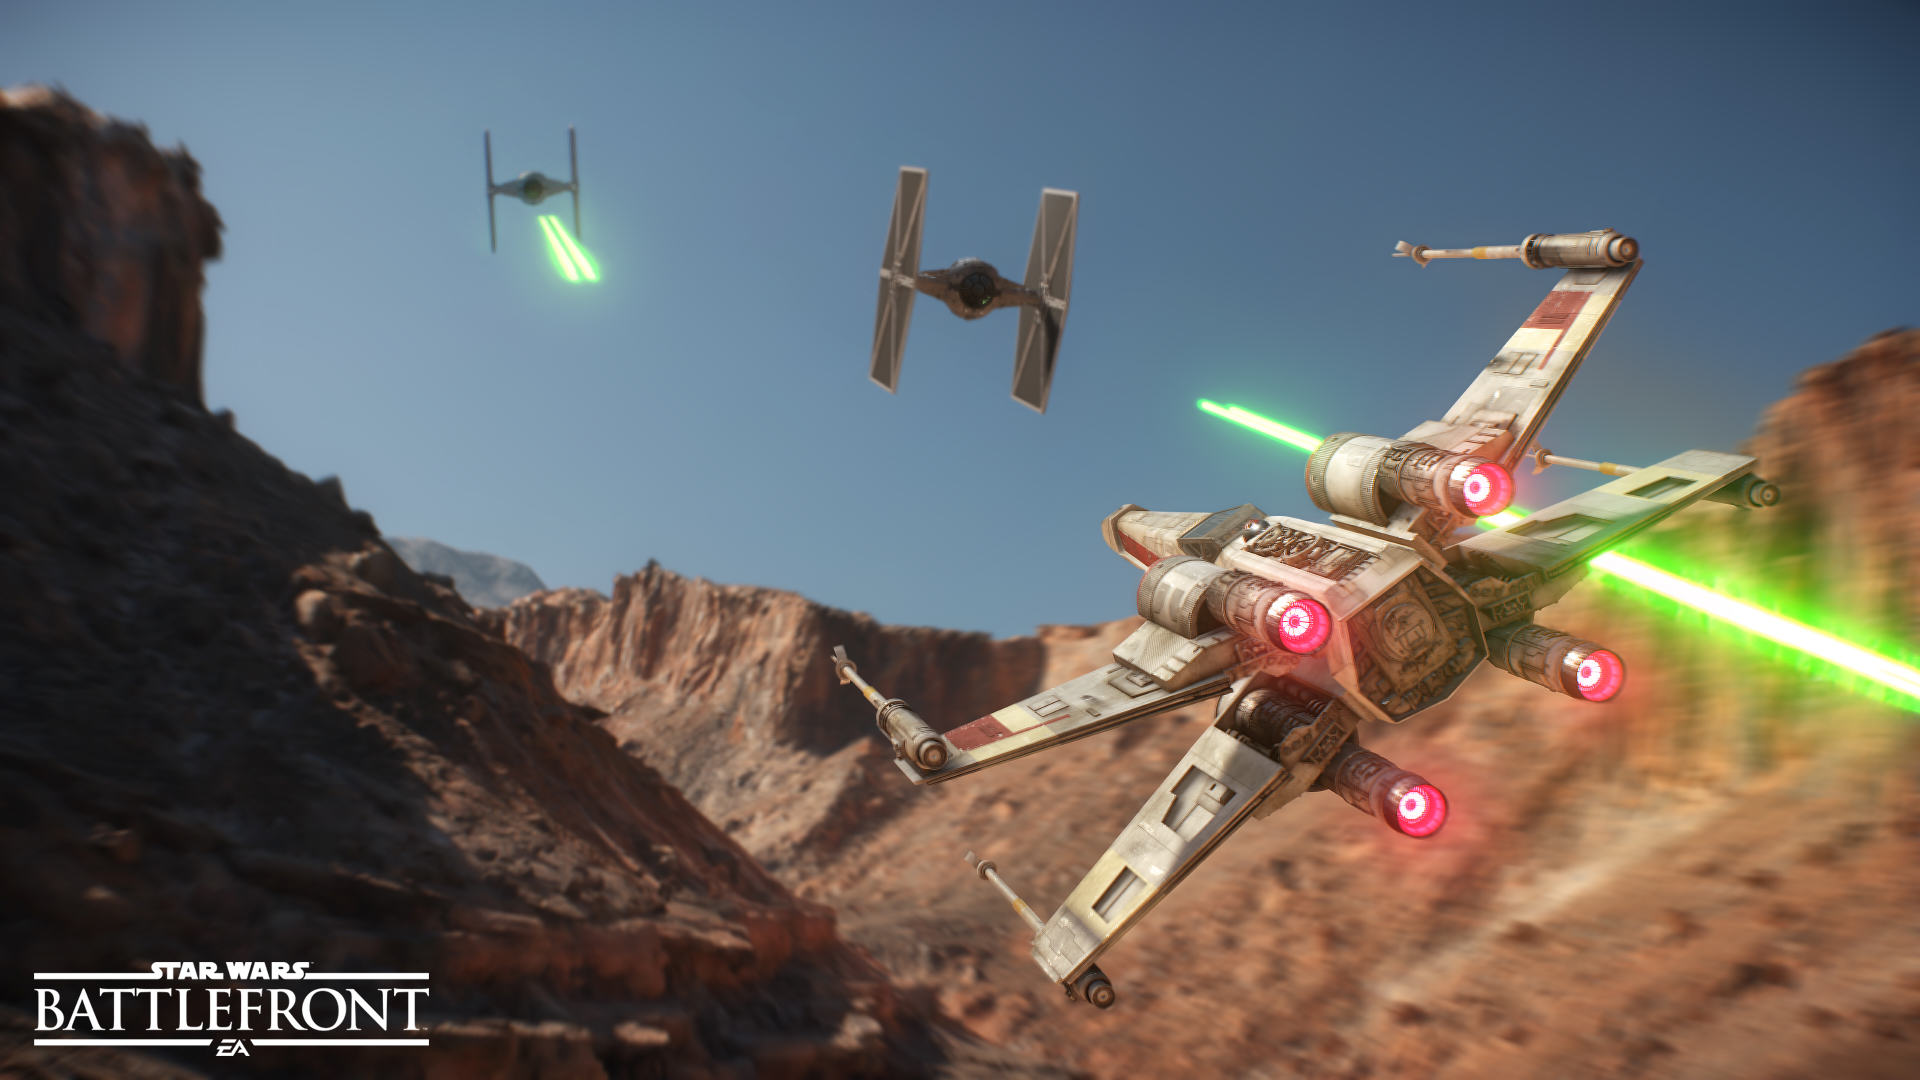 Star Wars: Battlefront Looks Stunning In These Desktop Backgrounds And Images UNILAD efBUv6o Imgur3